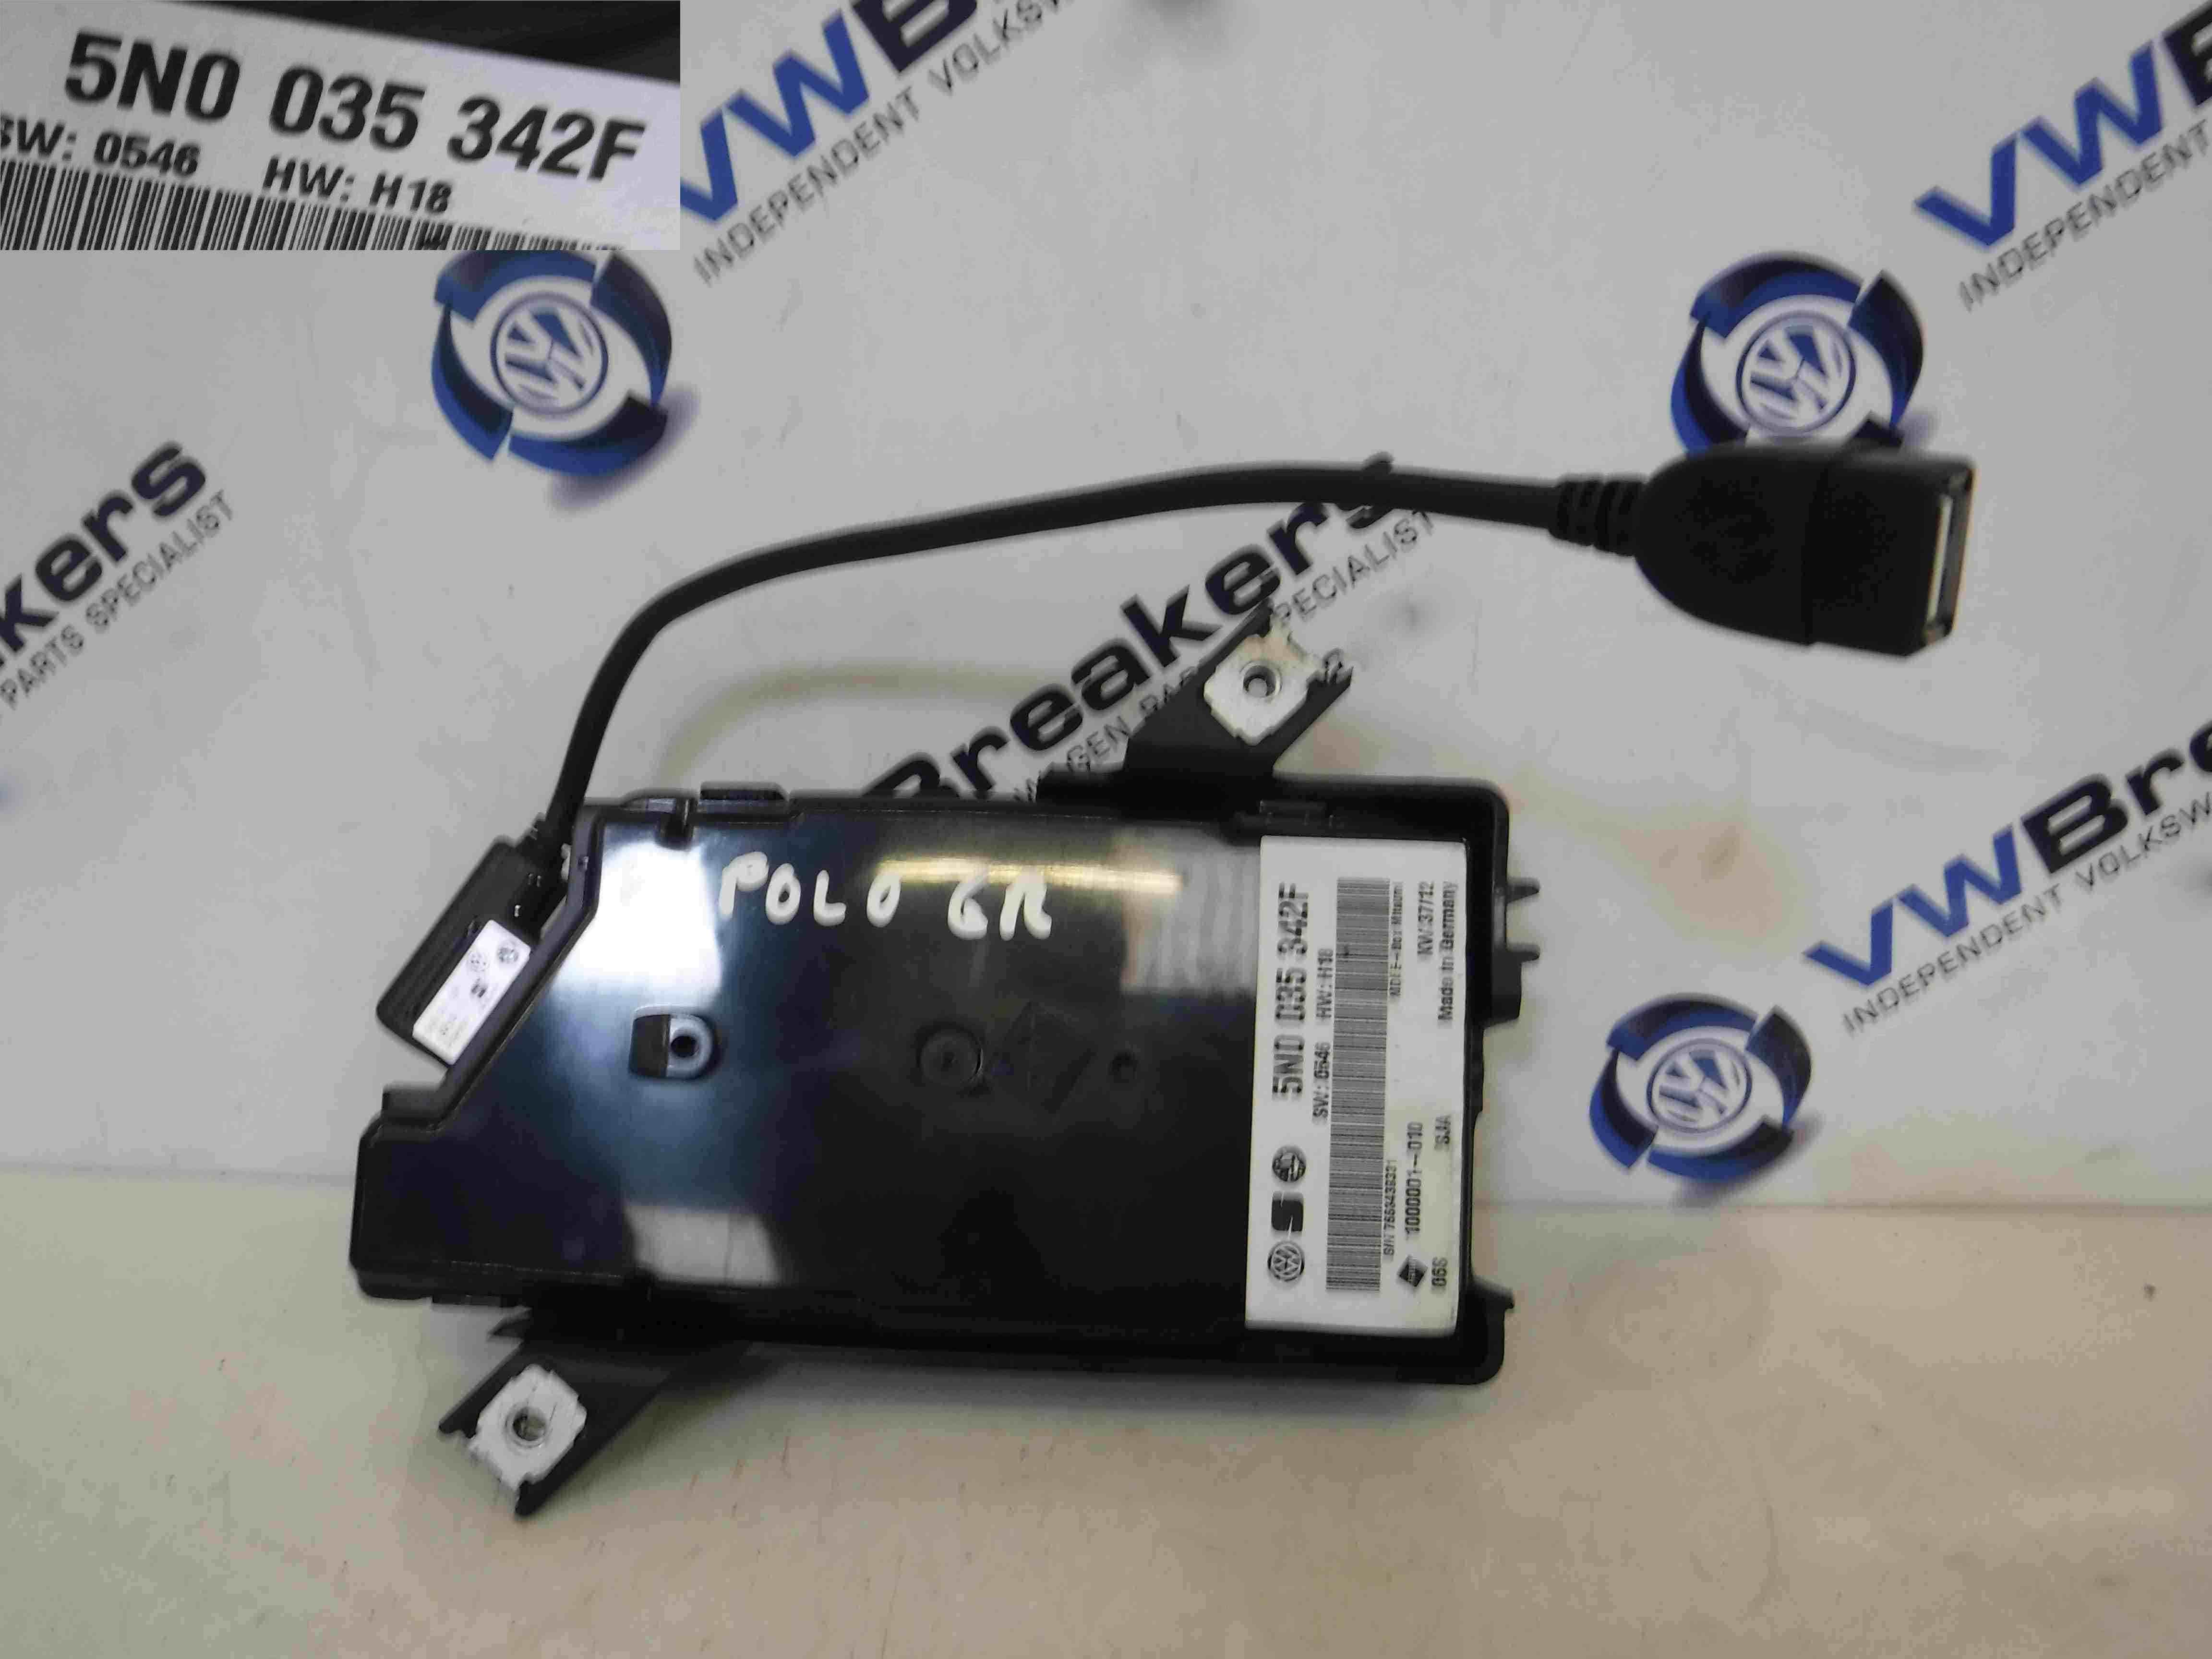 Volkswagen Polo 6R 2009-2015 Multimedia Interface Control Unit 5N0035342F